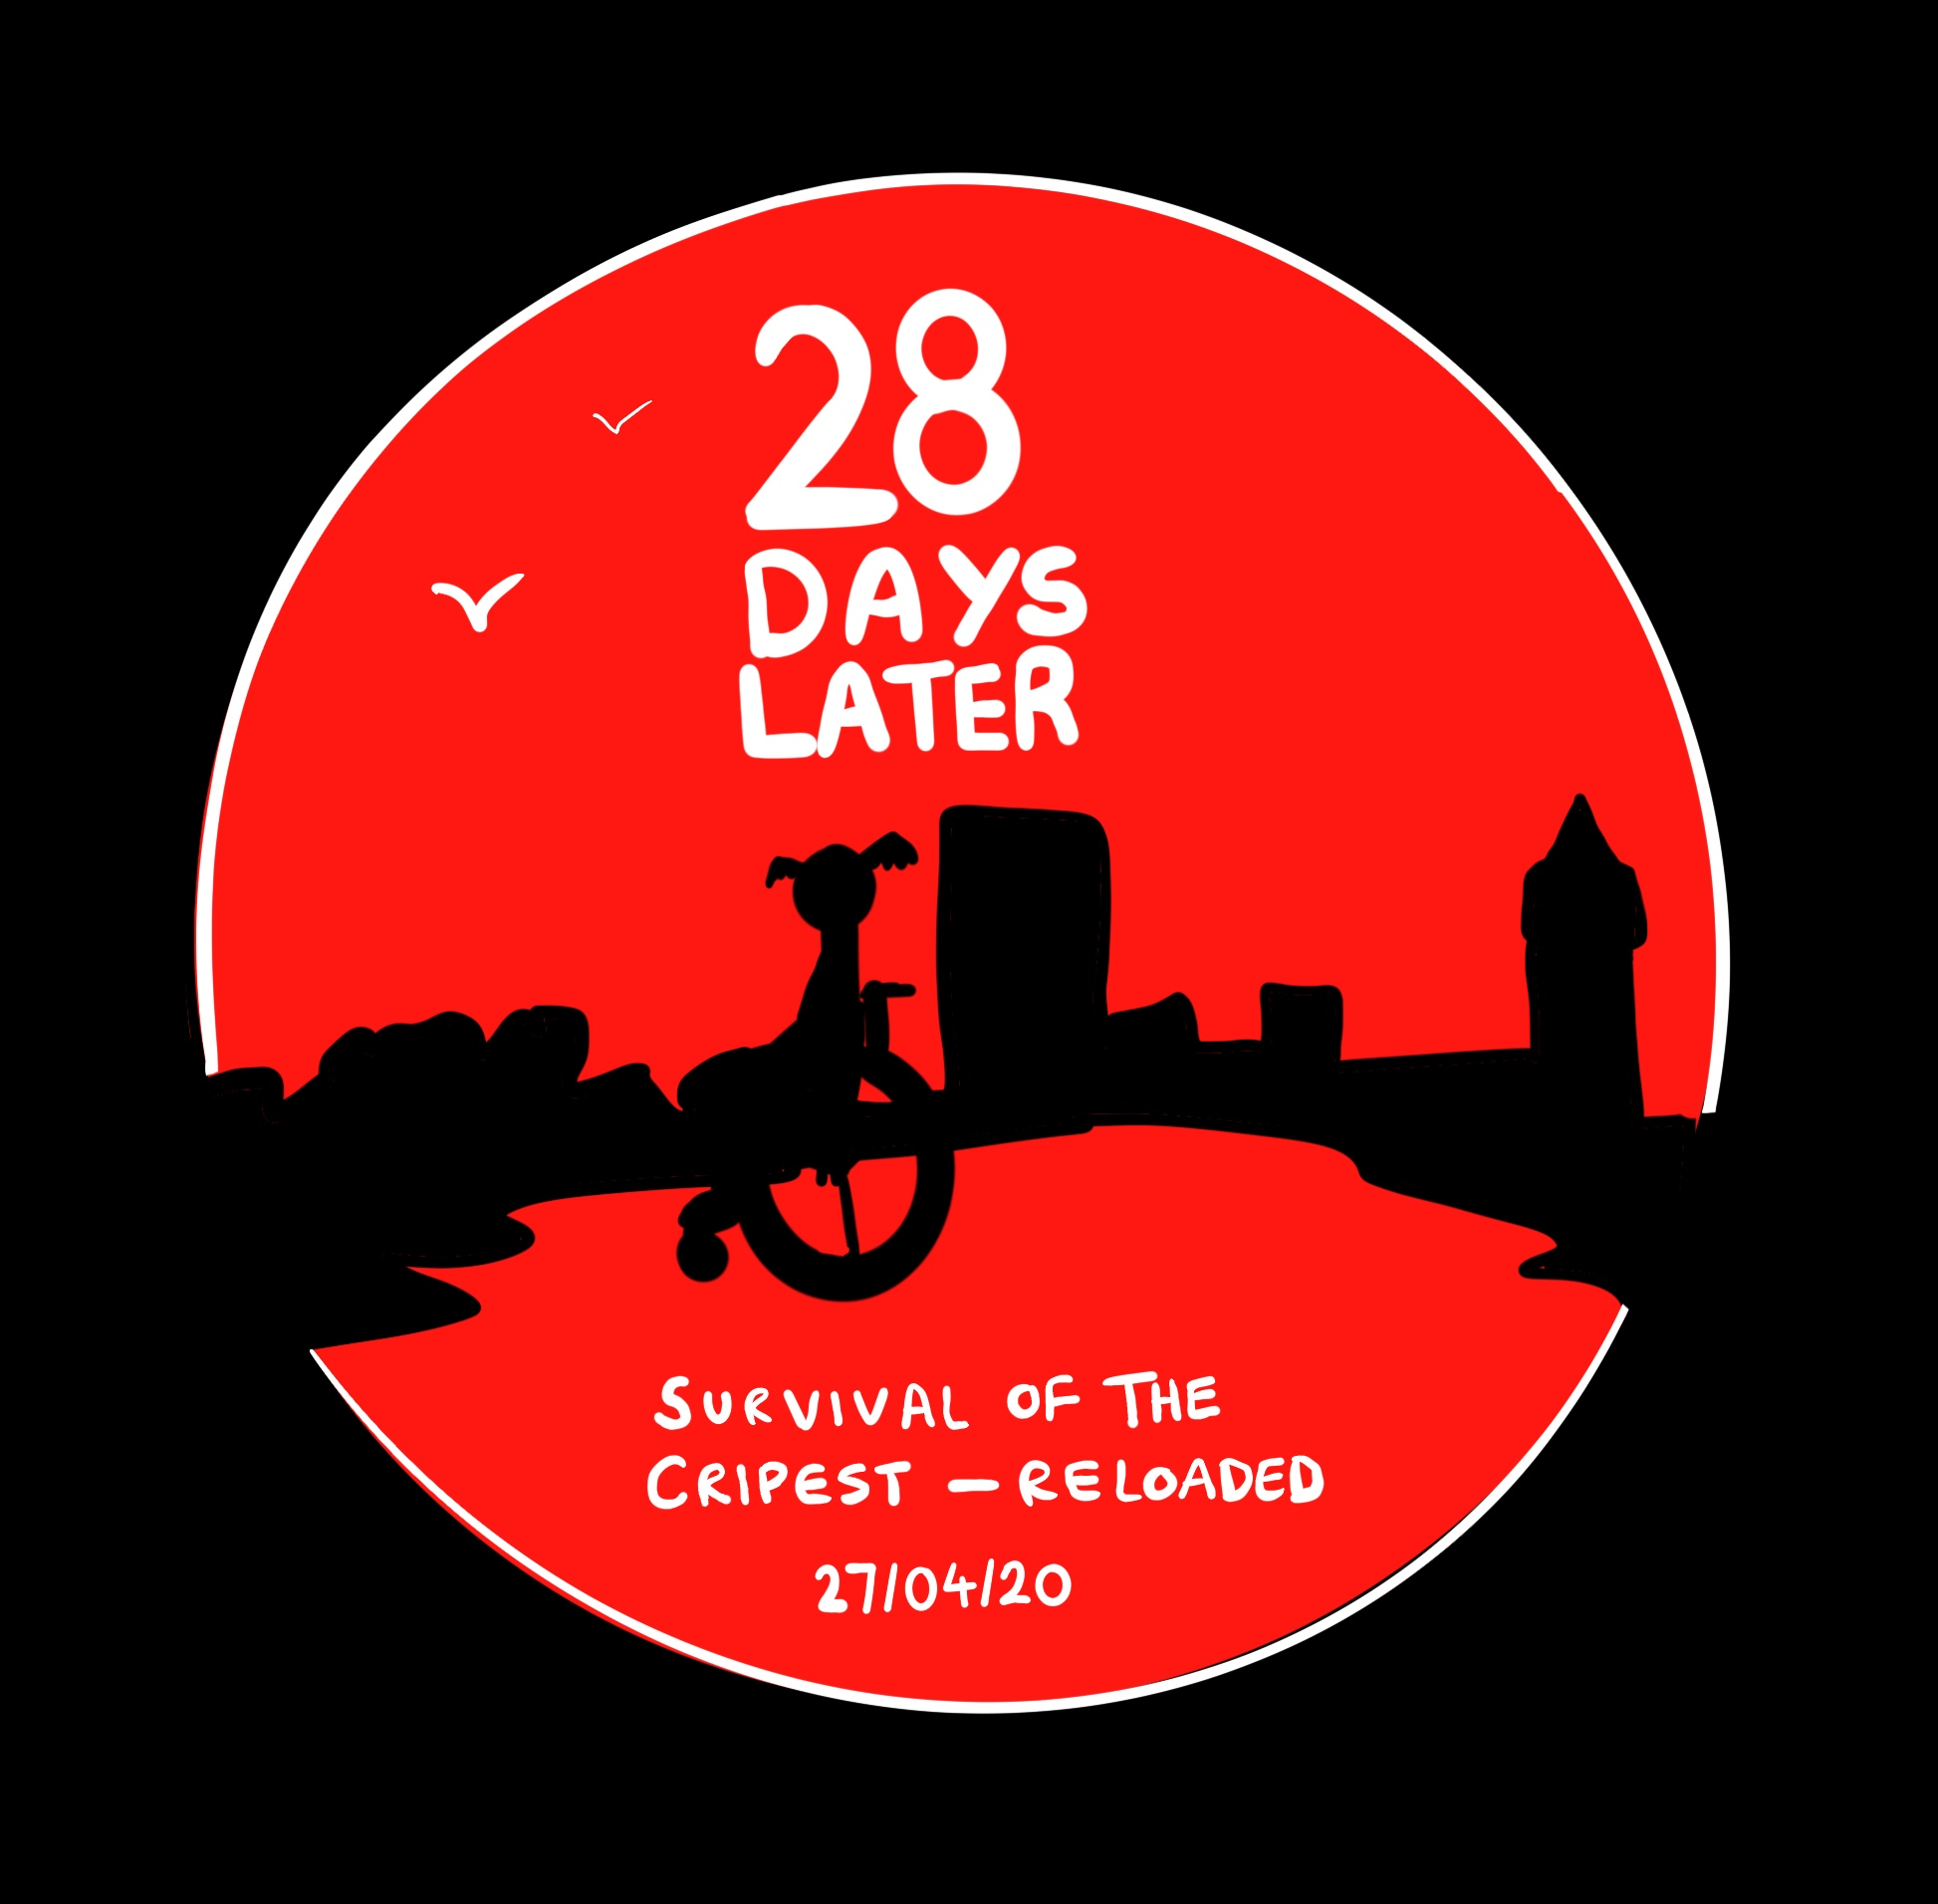 Image shows a digital drawing of a circularnred logo with white text that reads '28 Days Later'. There is a shadowy silhouette of a wheelchair user in a cityscape. At the bottom of the images reads 'Survival of the Cripest - Reloaded - 28 Days Later 27/04/20'